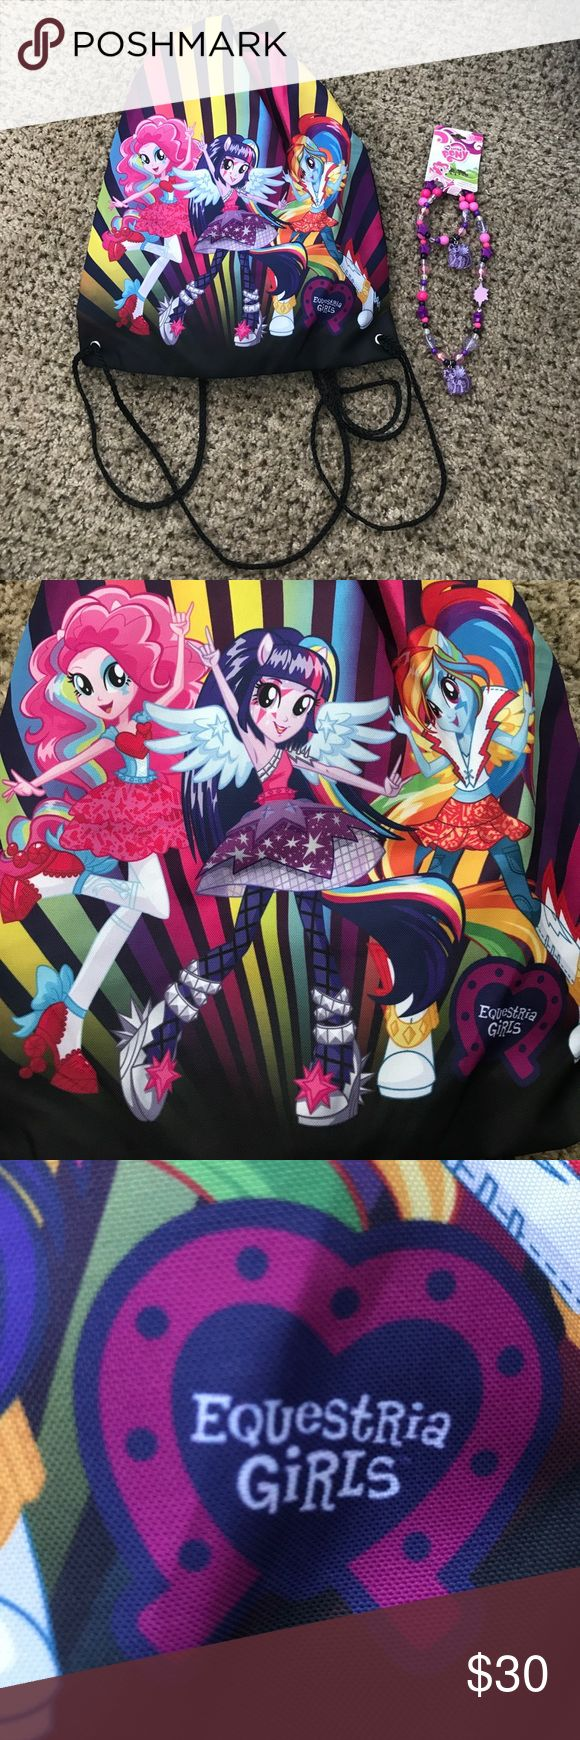 My Little Pony Equestria Girls Pack & Necklace Set My Little Pony Equestria Girls Pack & Necklace Set, NEW My Little Pony Accessories